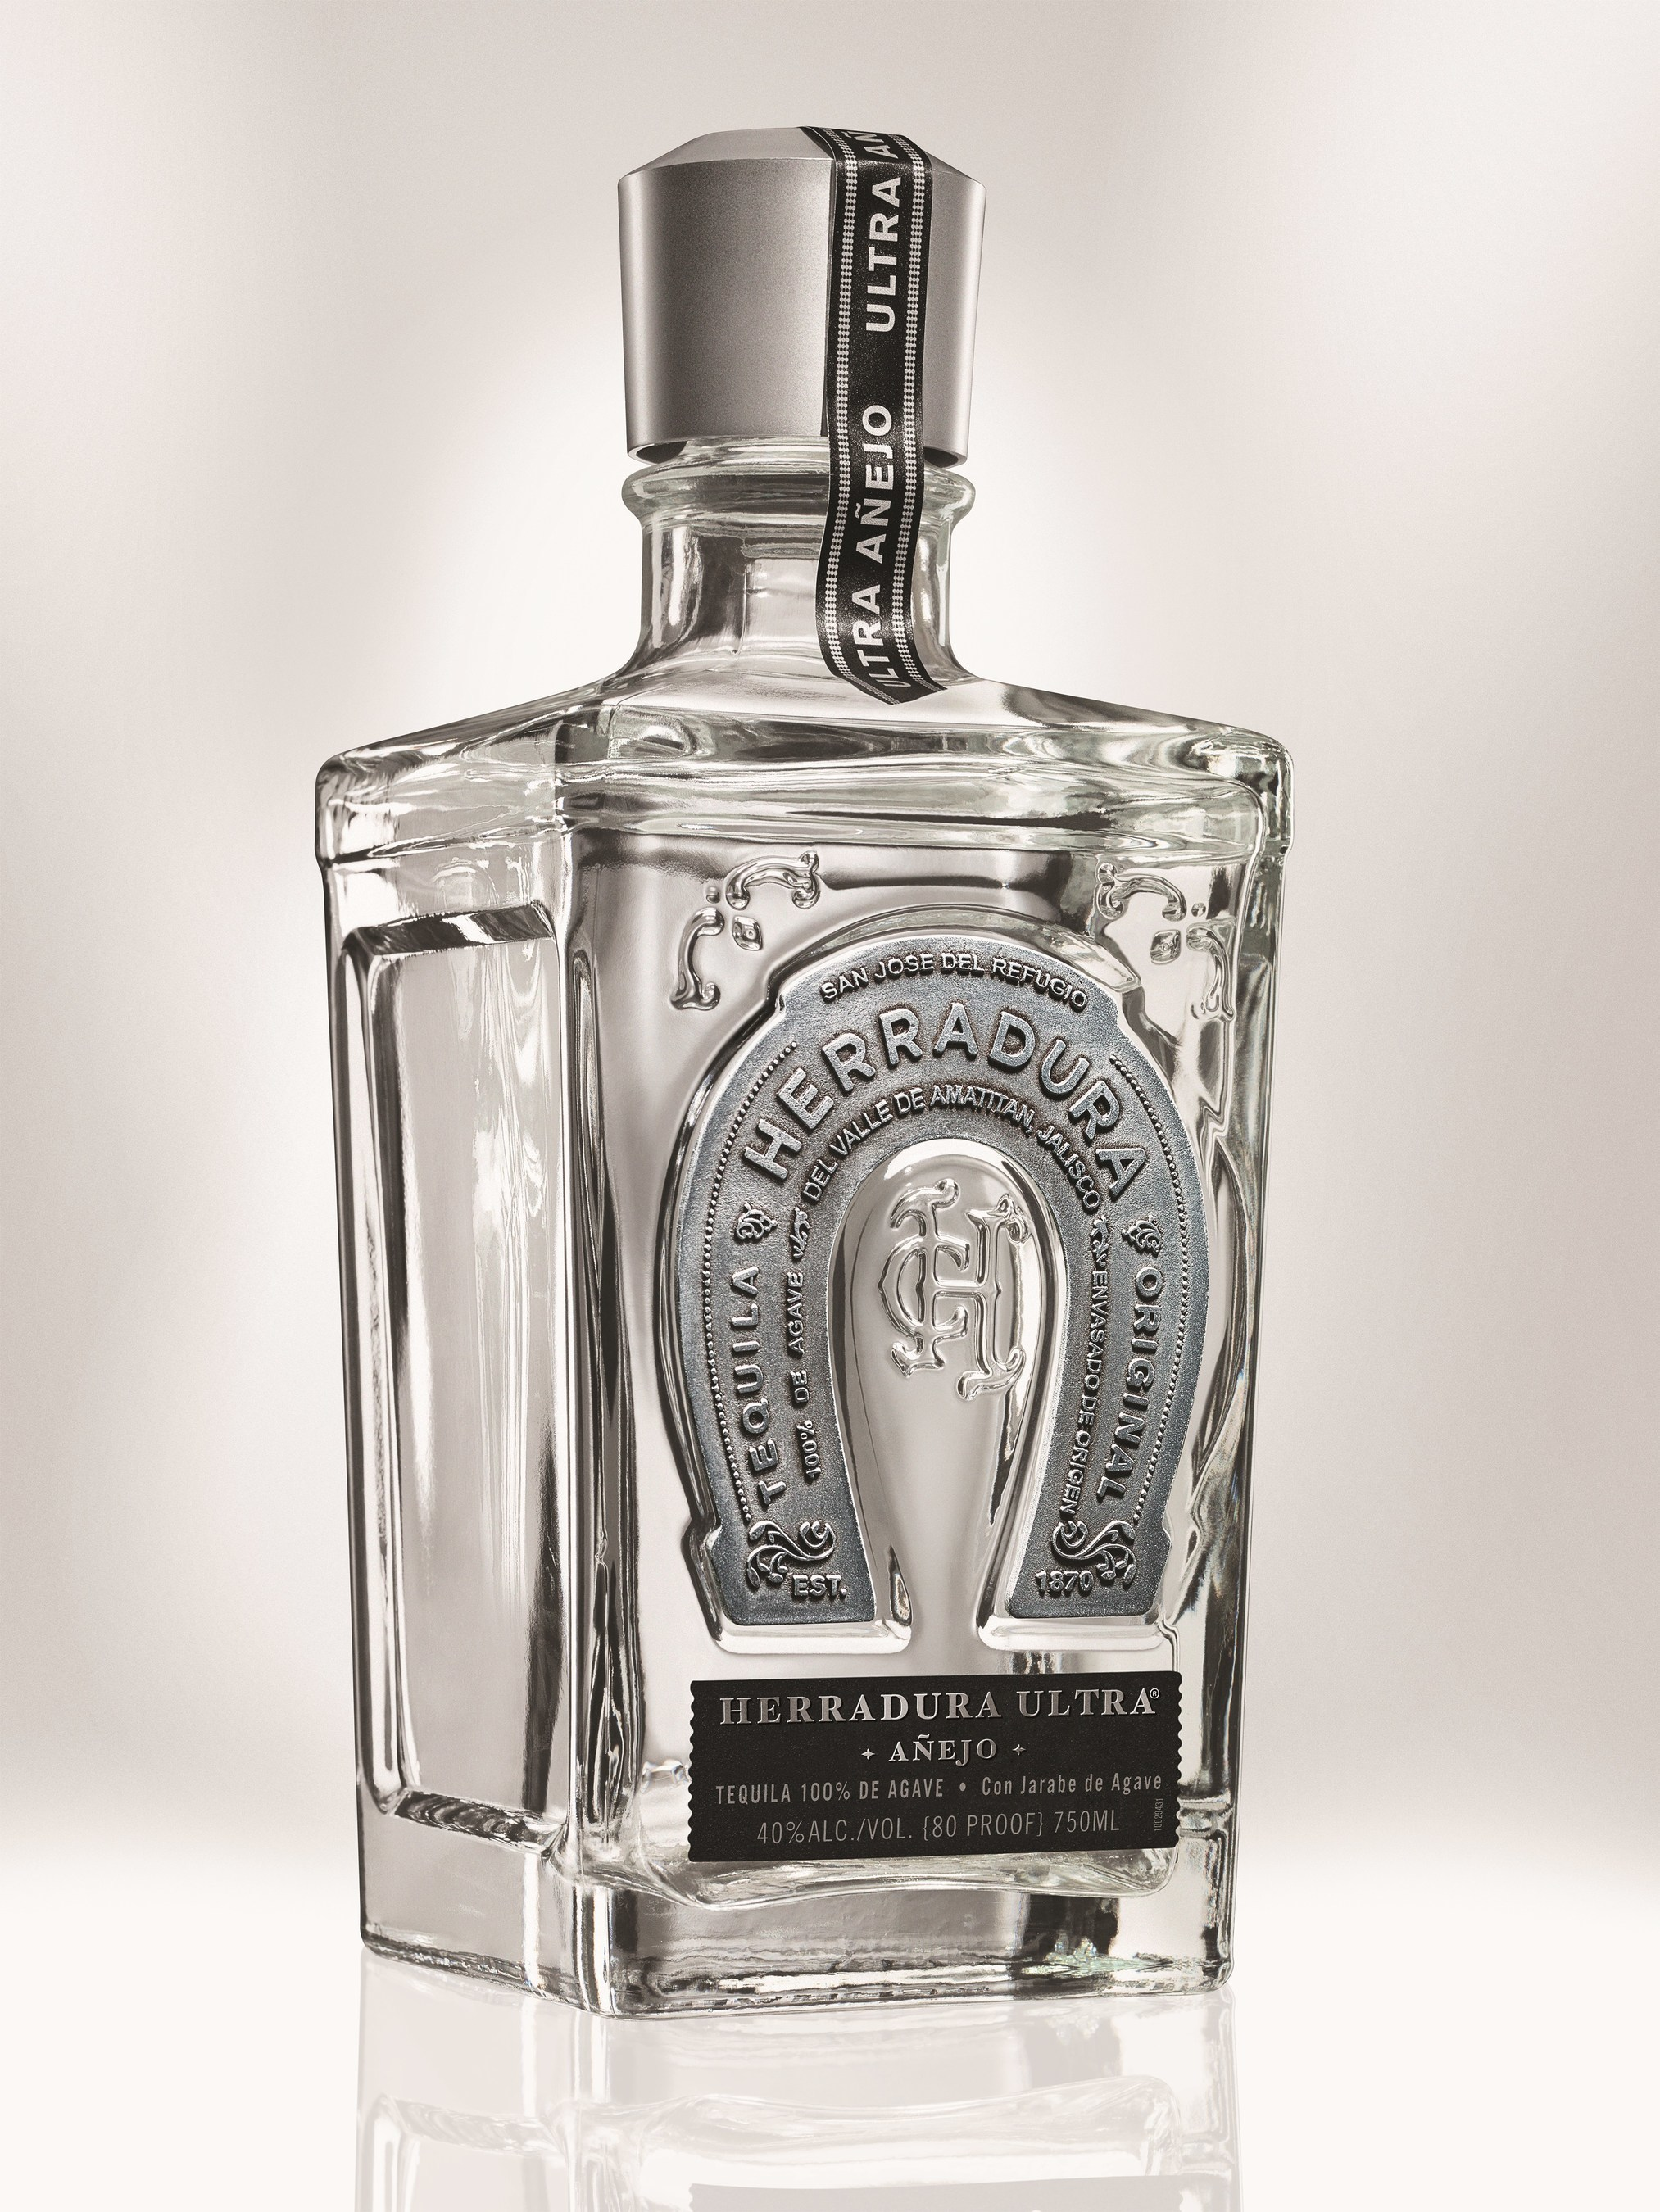 Review: Herradura Ultra Anejo Tequila